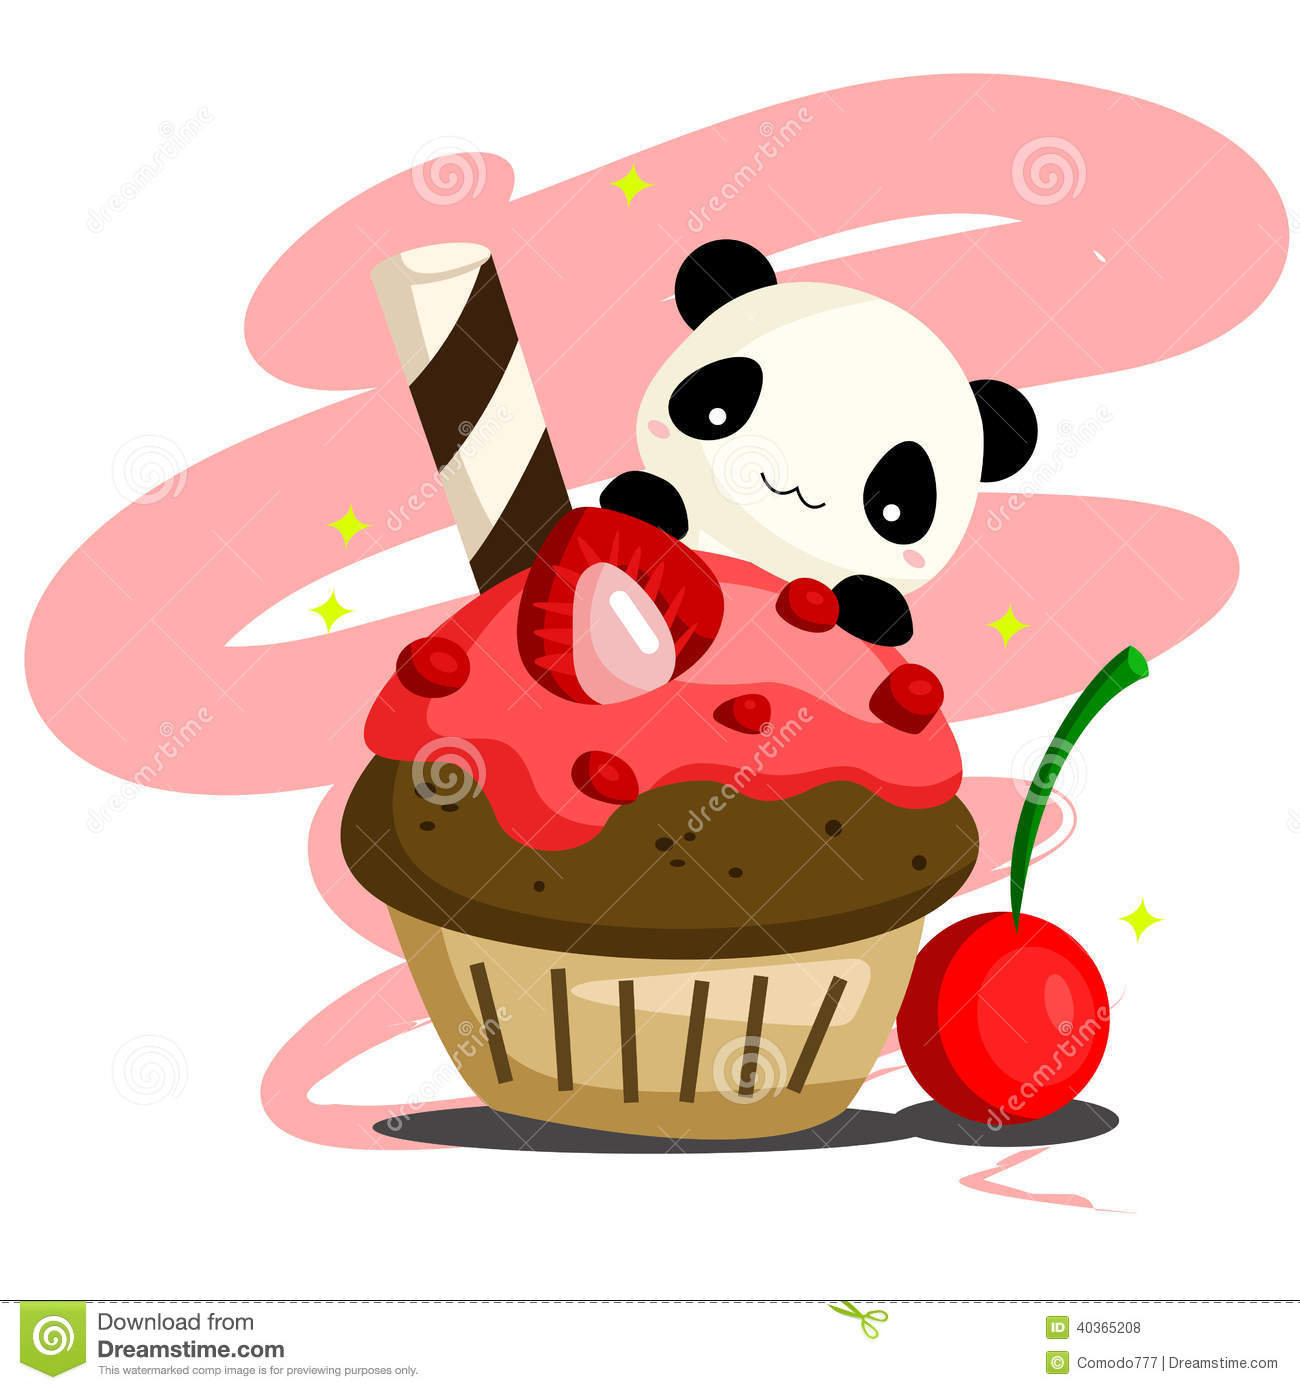 Panda And Dessert Stock Vector Illustration Of Pillow 40365208